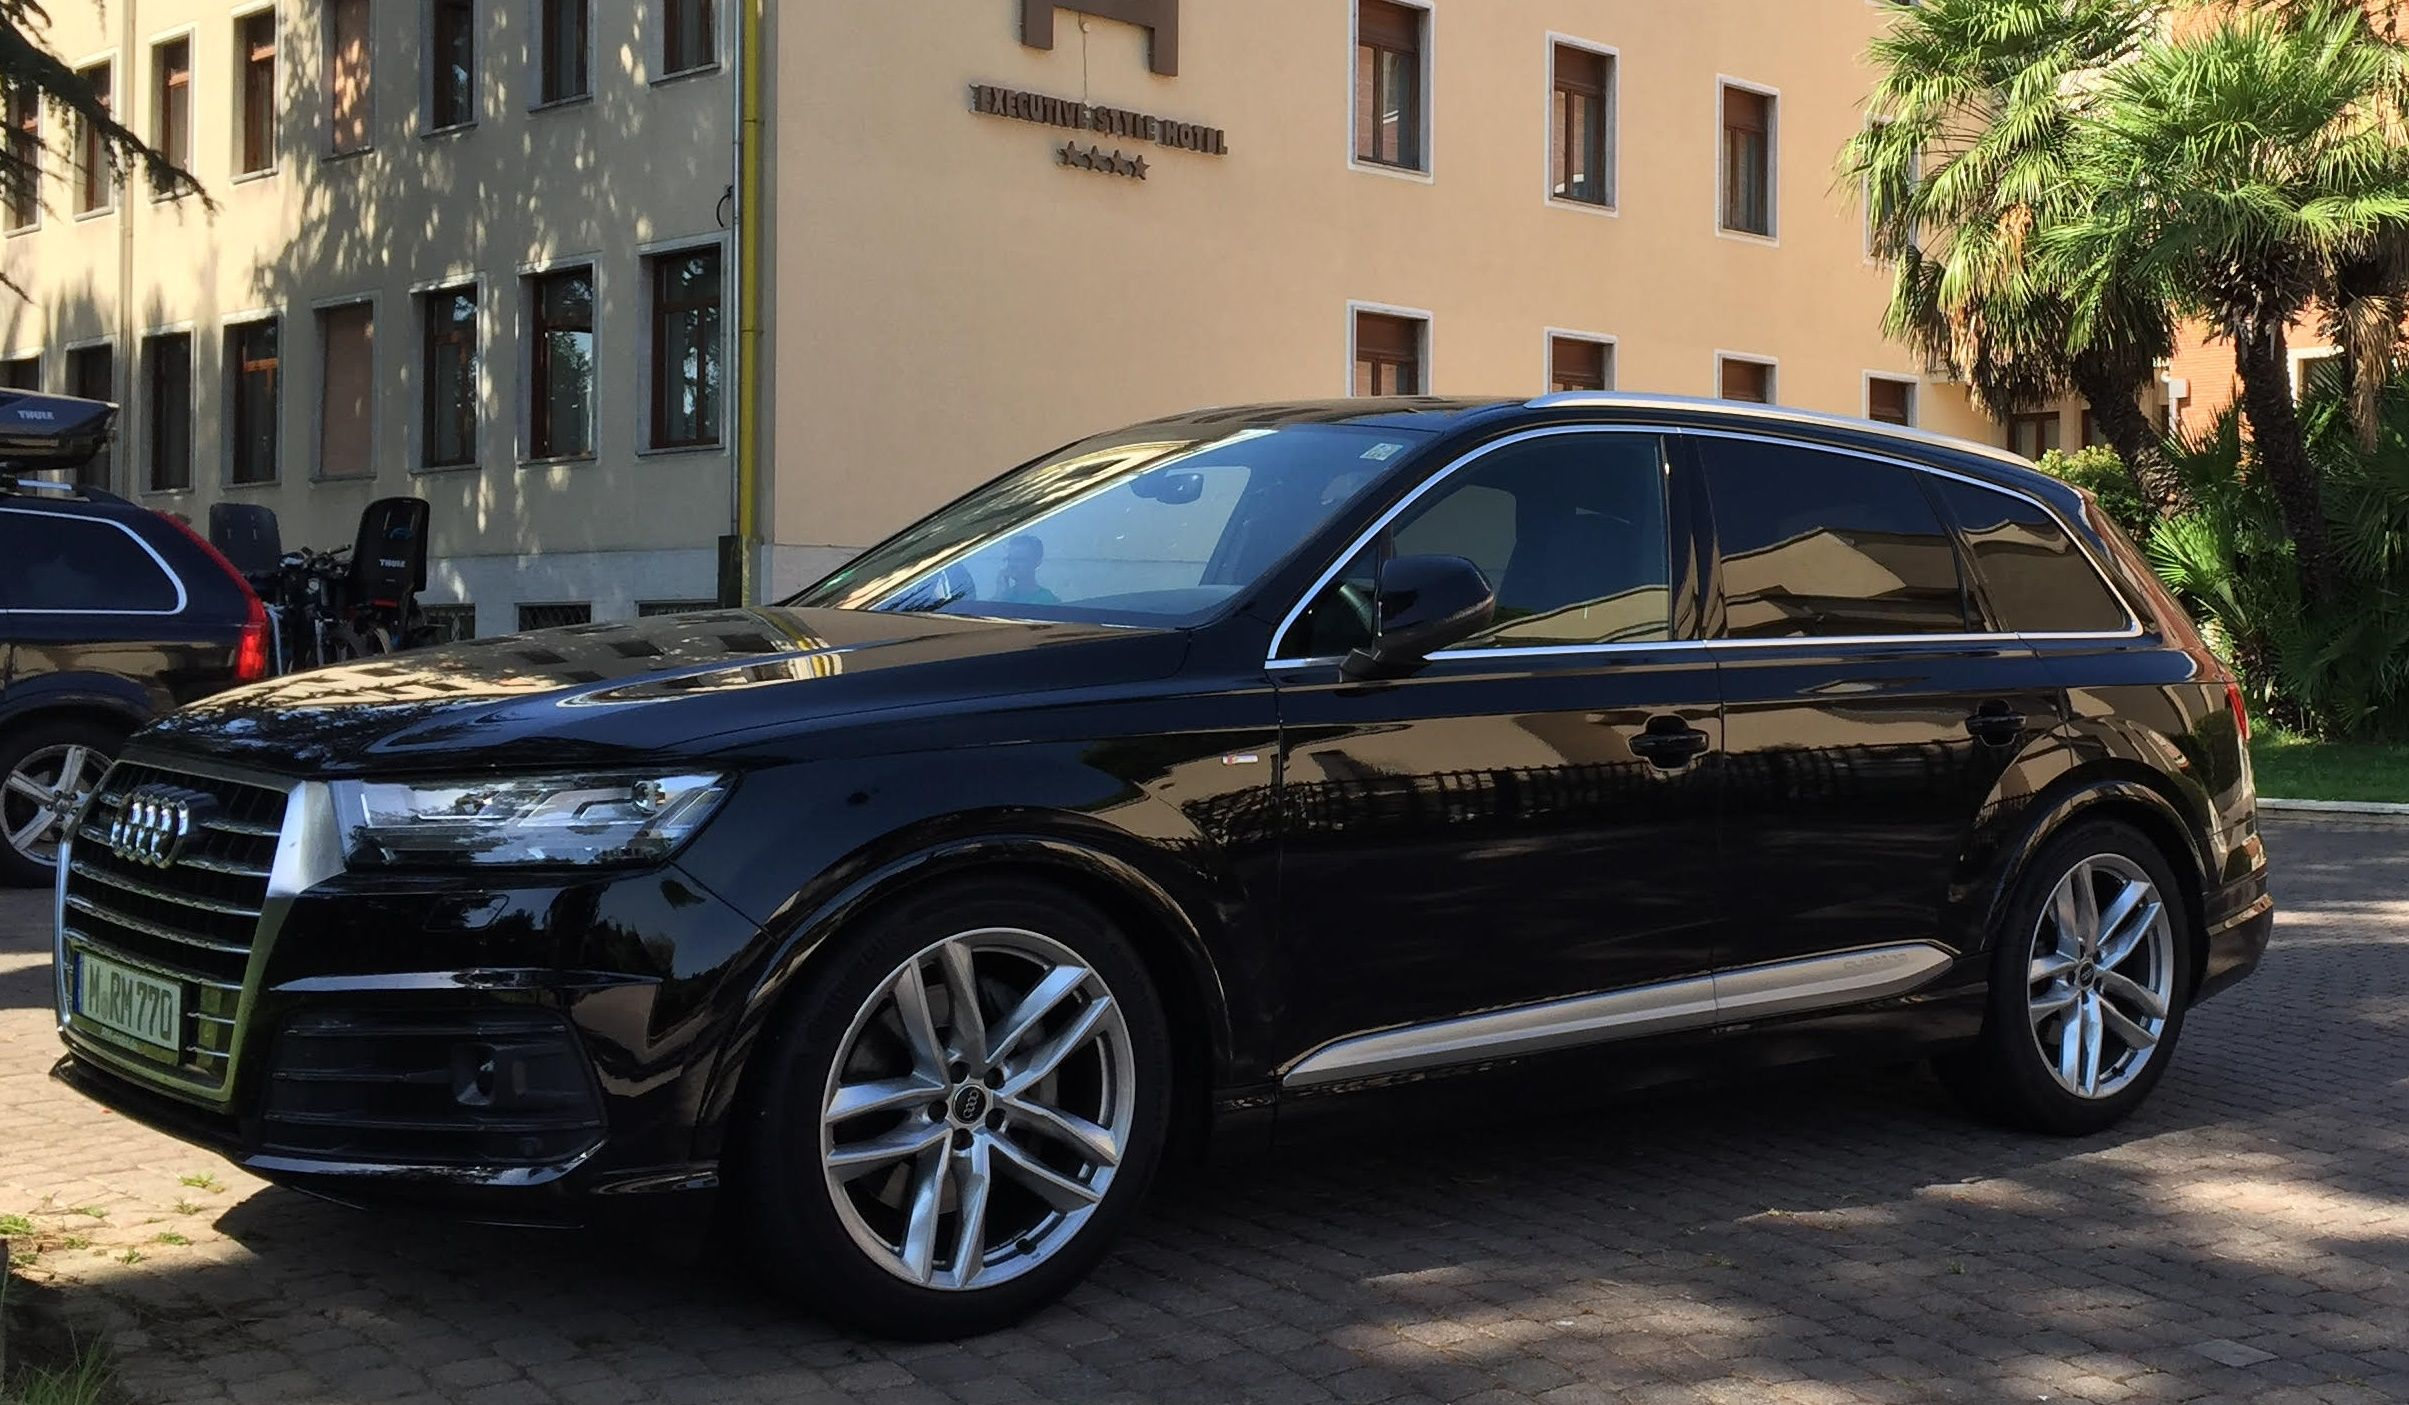 Audi Srt: #rent #audi #suv #luxury #german